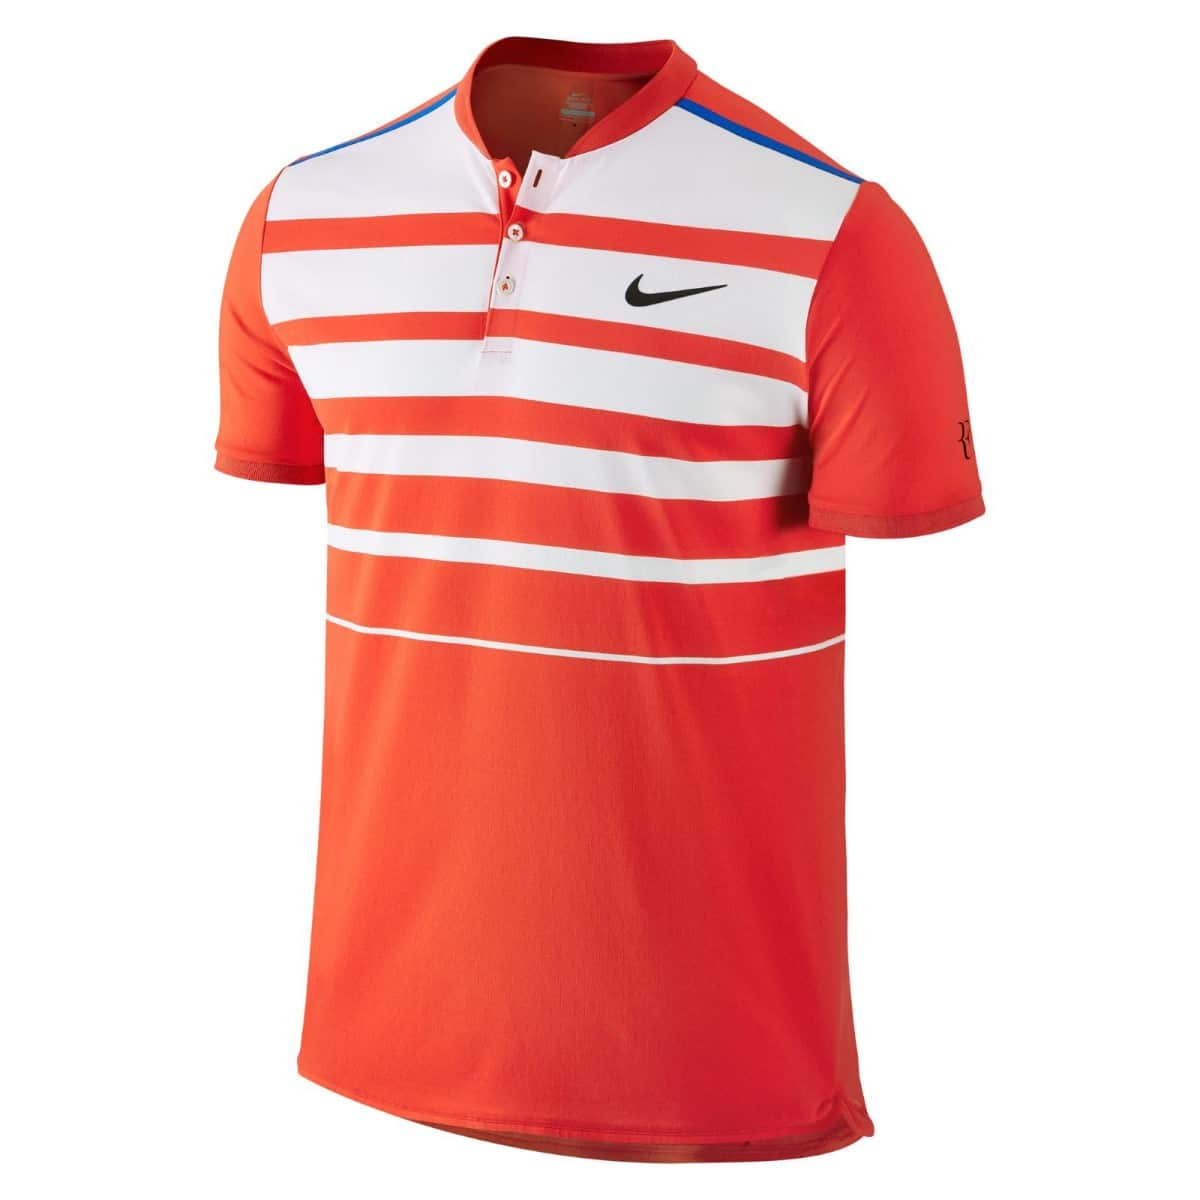 12cf99564d2b7 Roger Federer s Outfit for Miami 2016 - peRFect Tennis